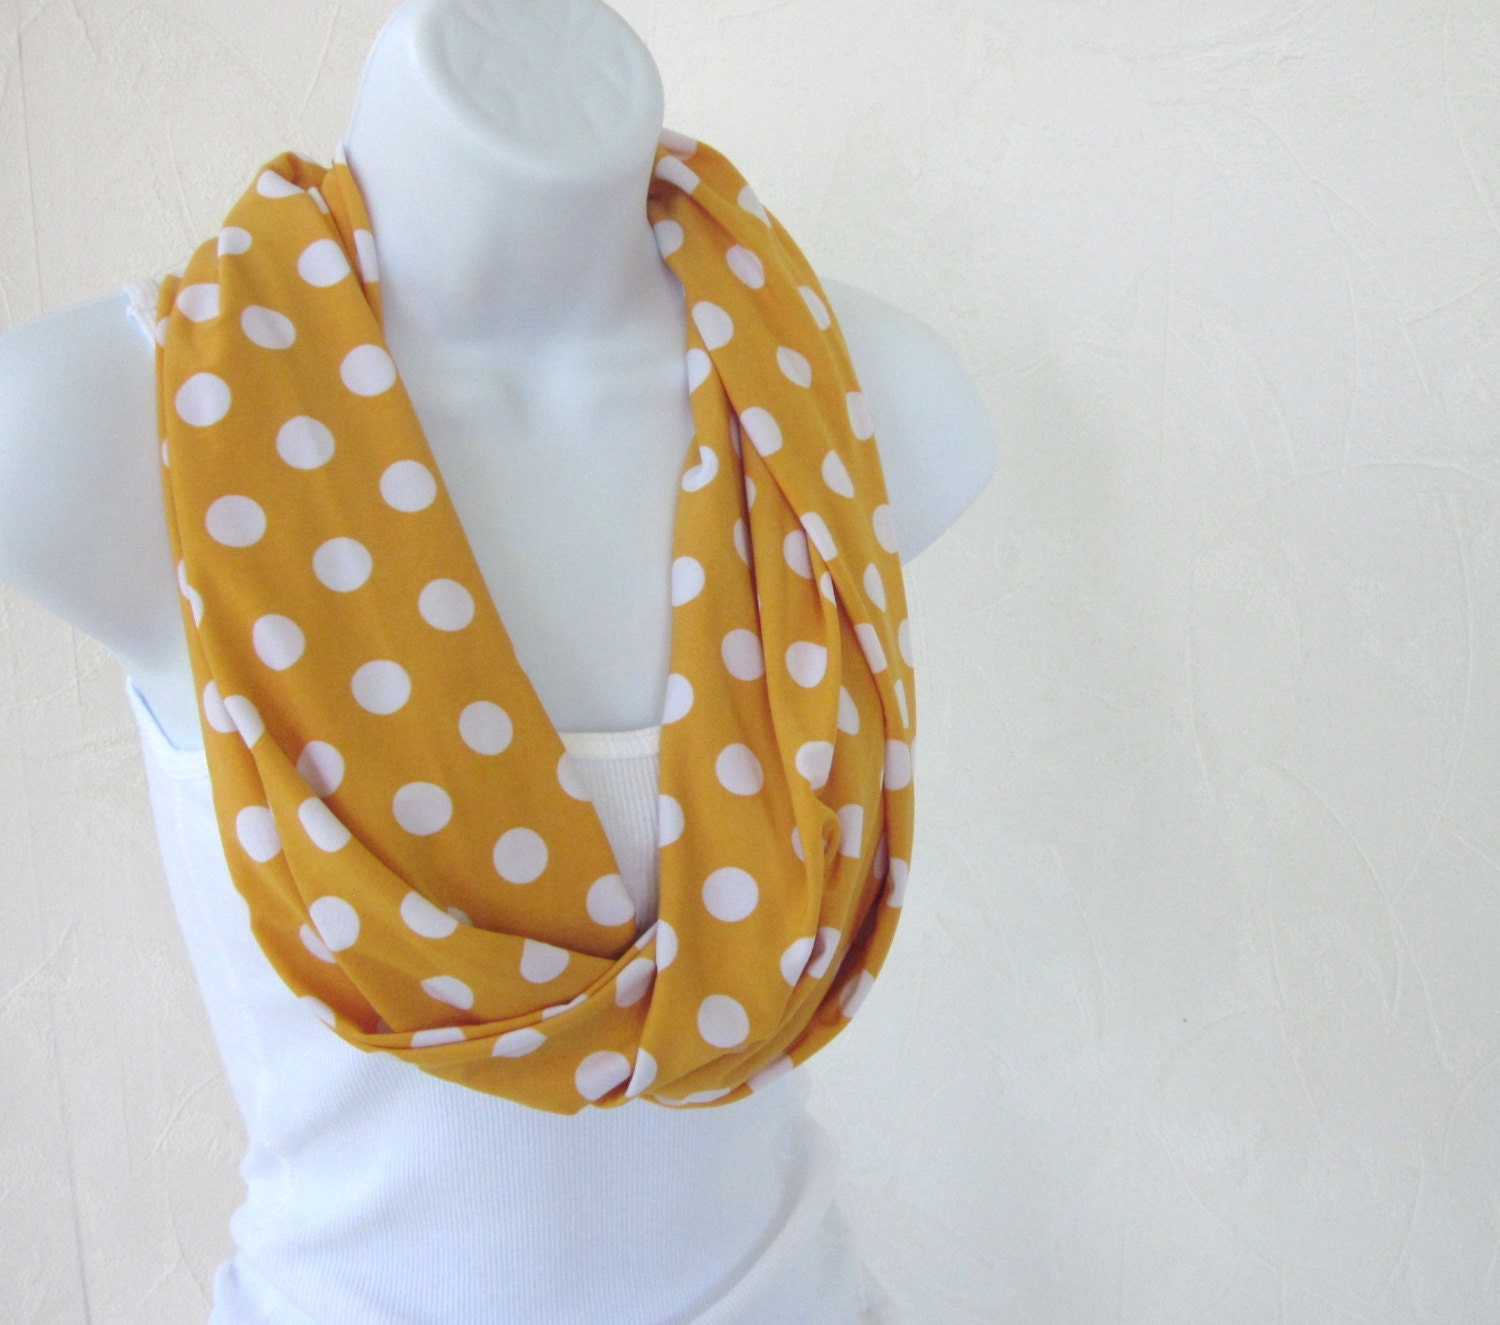 Polka Dot Infinity Scarf Golden Maize Yellow Jersey Knit Single Loop Scarf Summer Fashion Handmade by Thimbledoodle - thimbledoodle